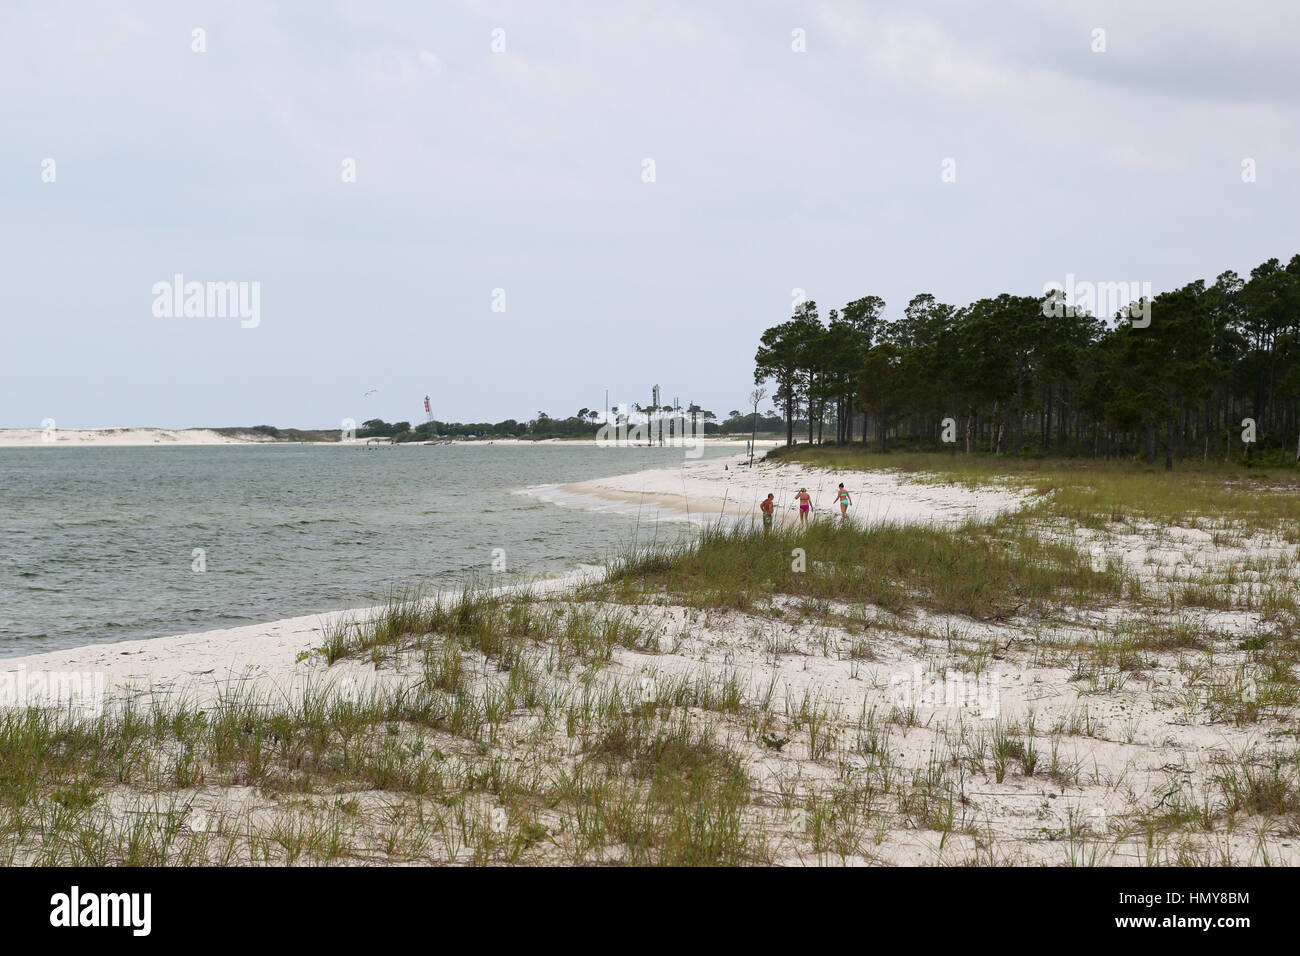 Pensacola Bay and the Beach at NAS Pensacola - Stock Image